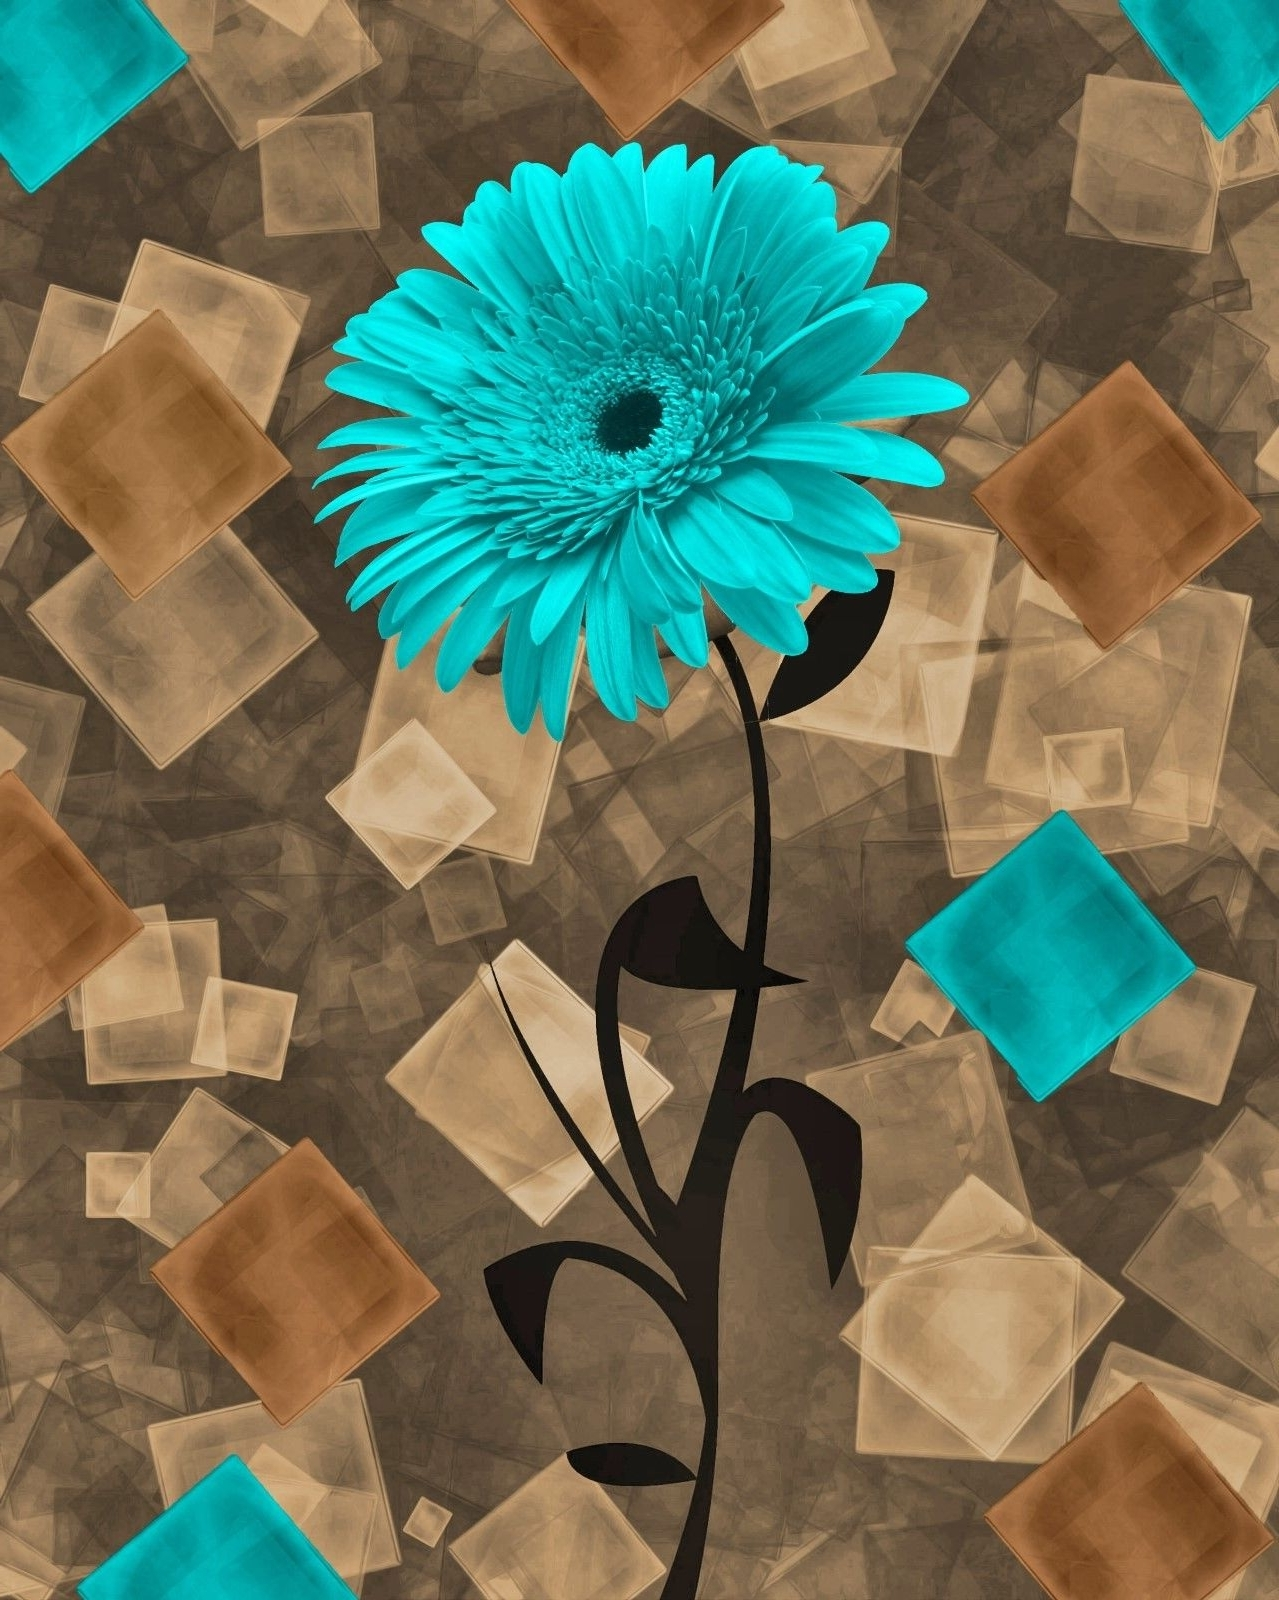 Latest Turquoise And Brown Wall Art Regarding Teal Brown Daisy Flower Modern Bathroom Bedroom Home Decor Wall (View 4 of 15)